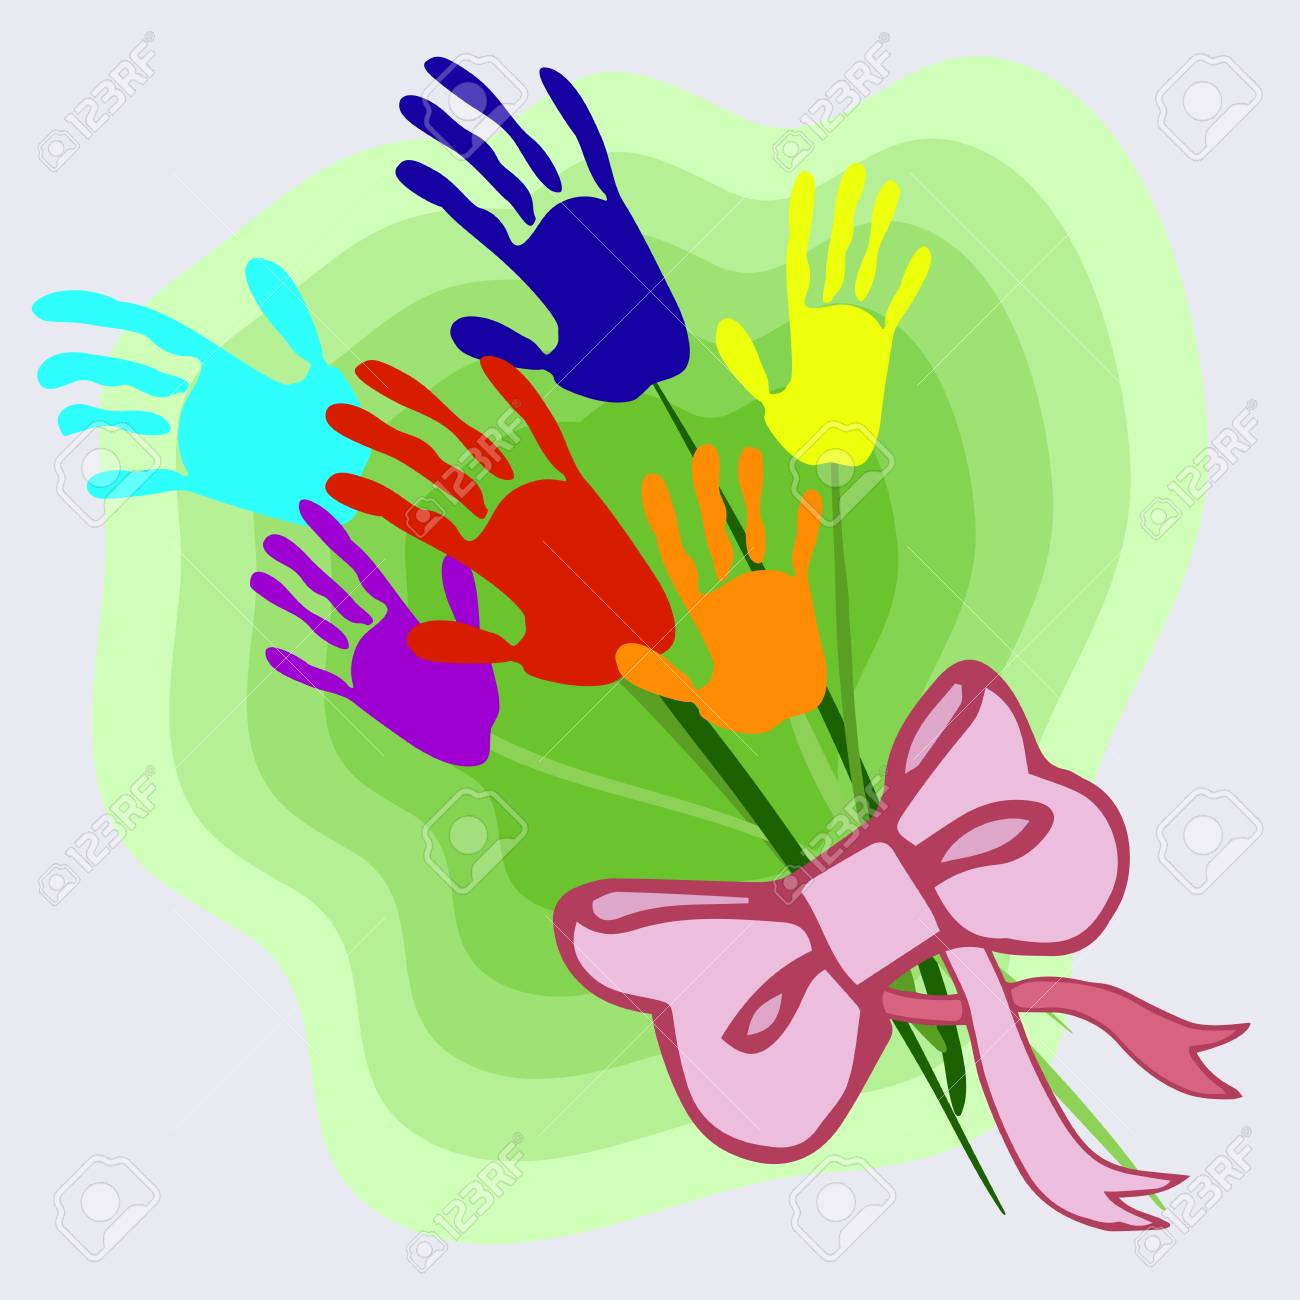 Bouquet Of Stylized Multicolored Flowers In The Form Of Children\'s ...